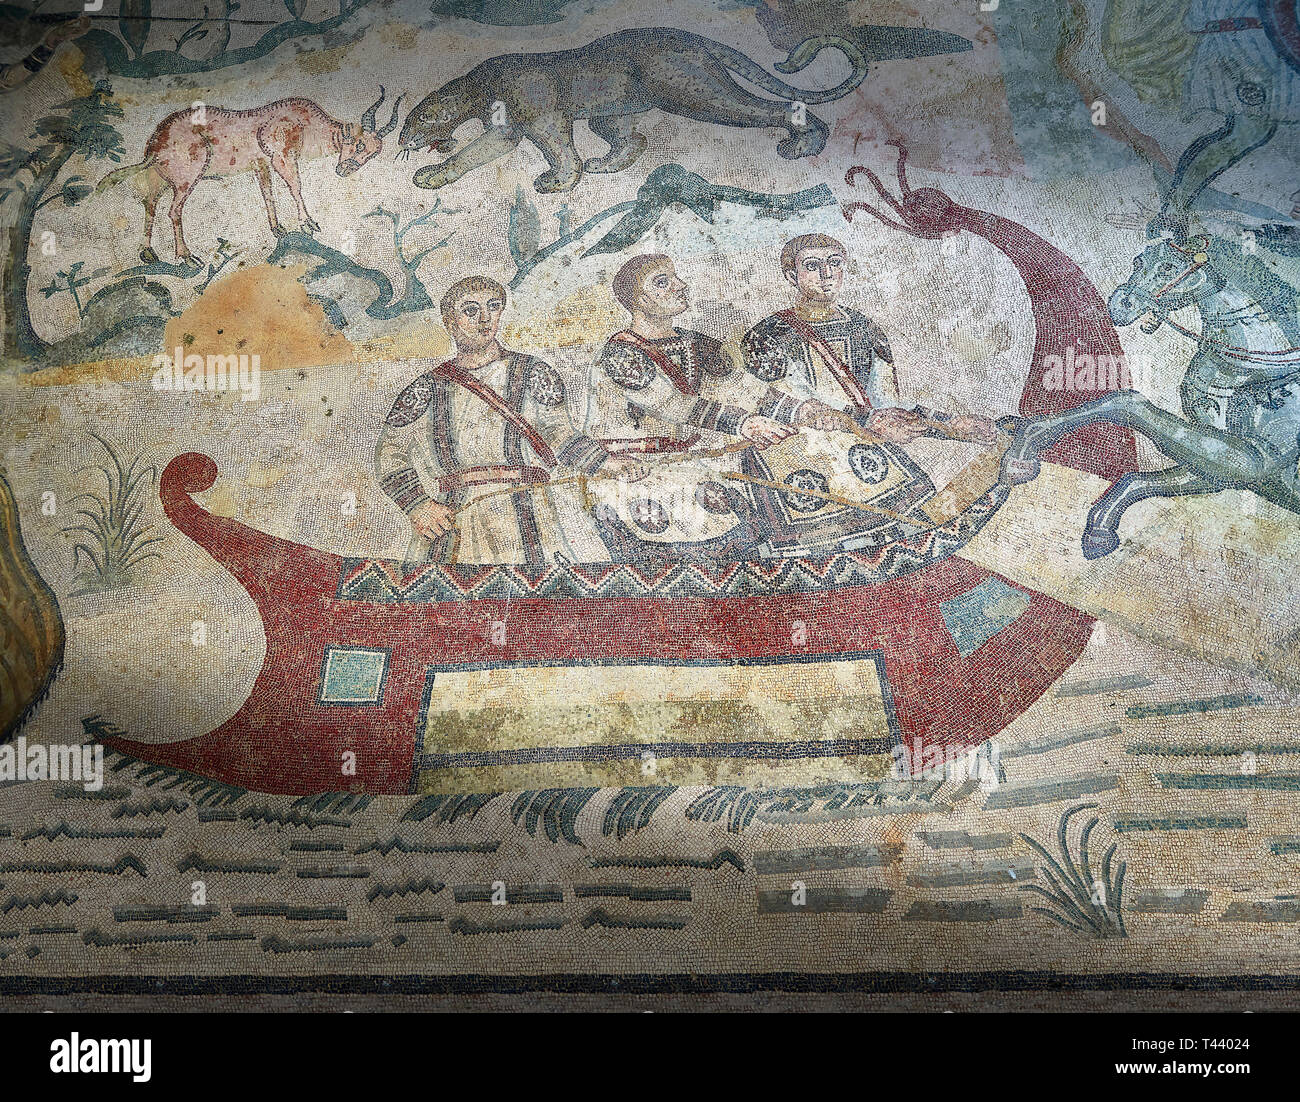 Fishermen Roman mosaic, room 24, at the Villa Romana del Casale, Sicily ,  circa the first quarter of the 4th century AD. Sicily, Italy. A UNESCO Worl - Stock Image